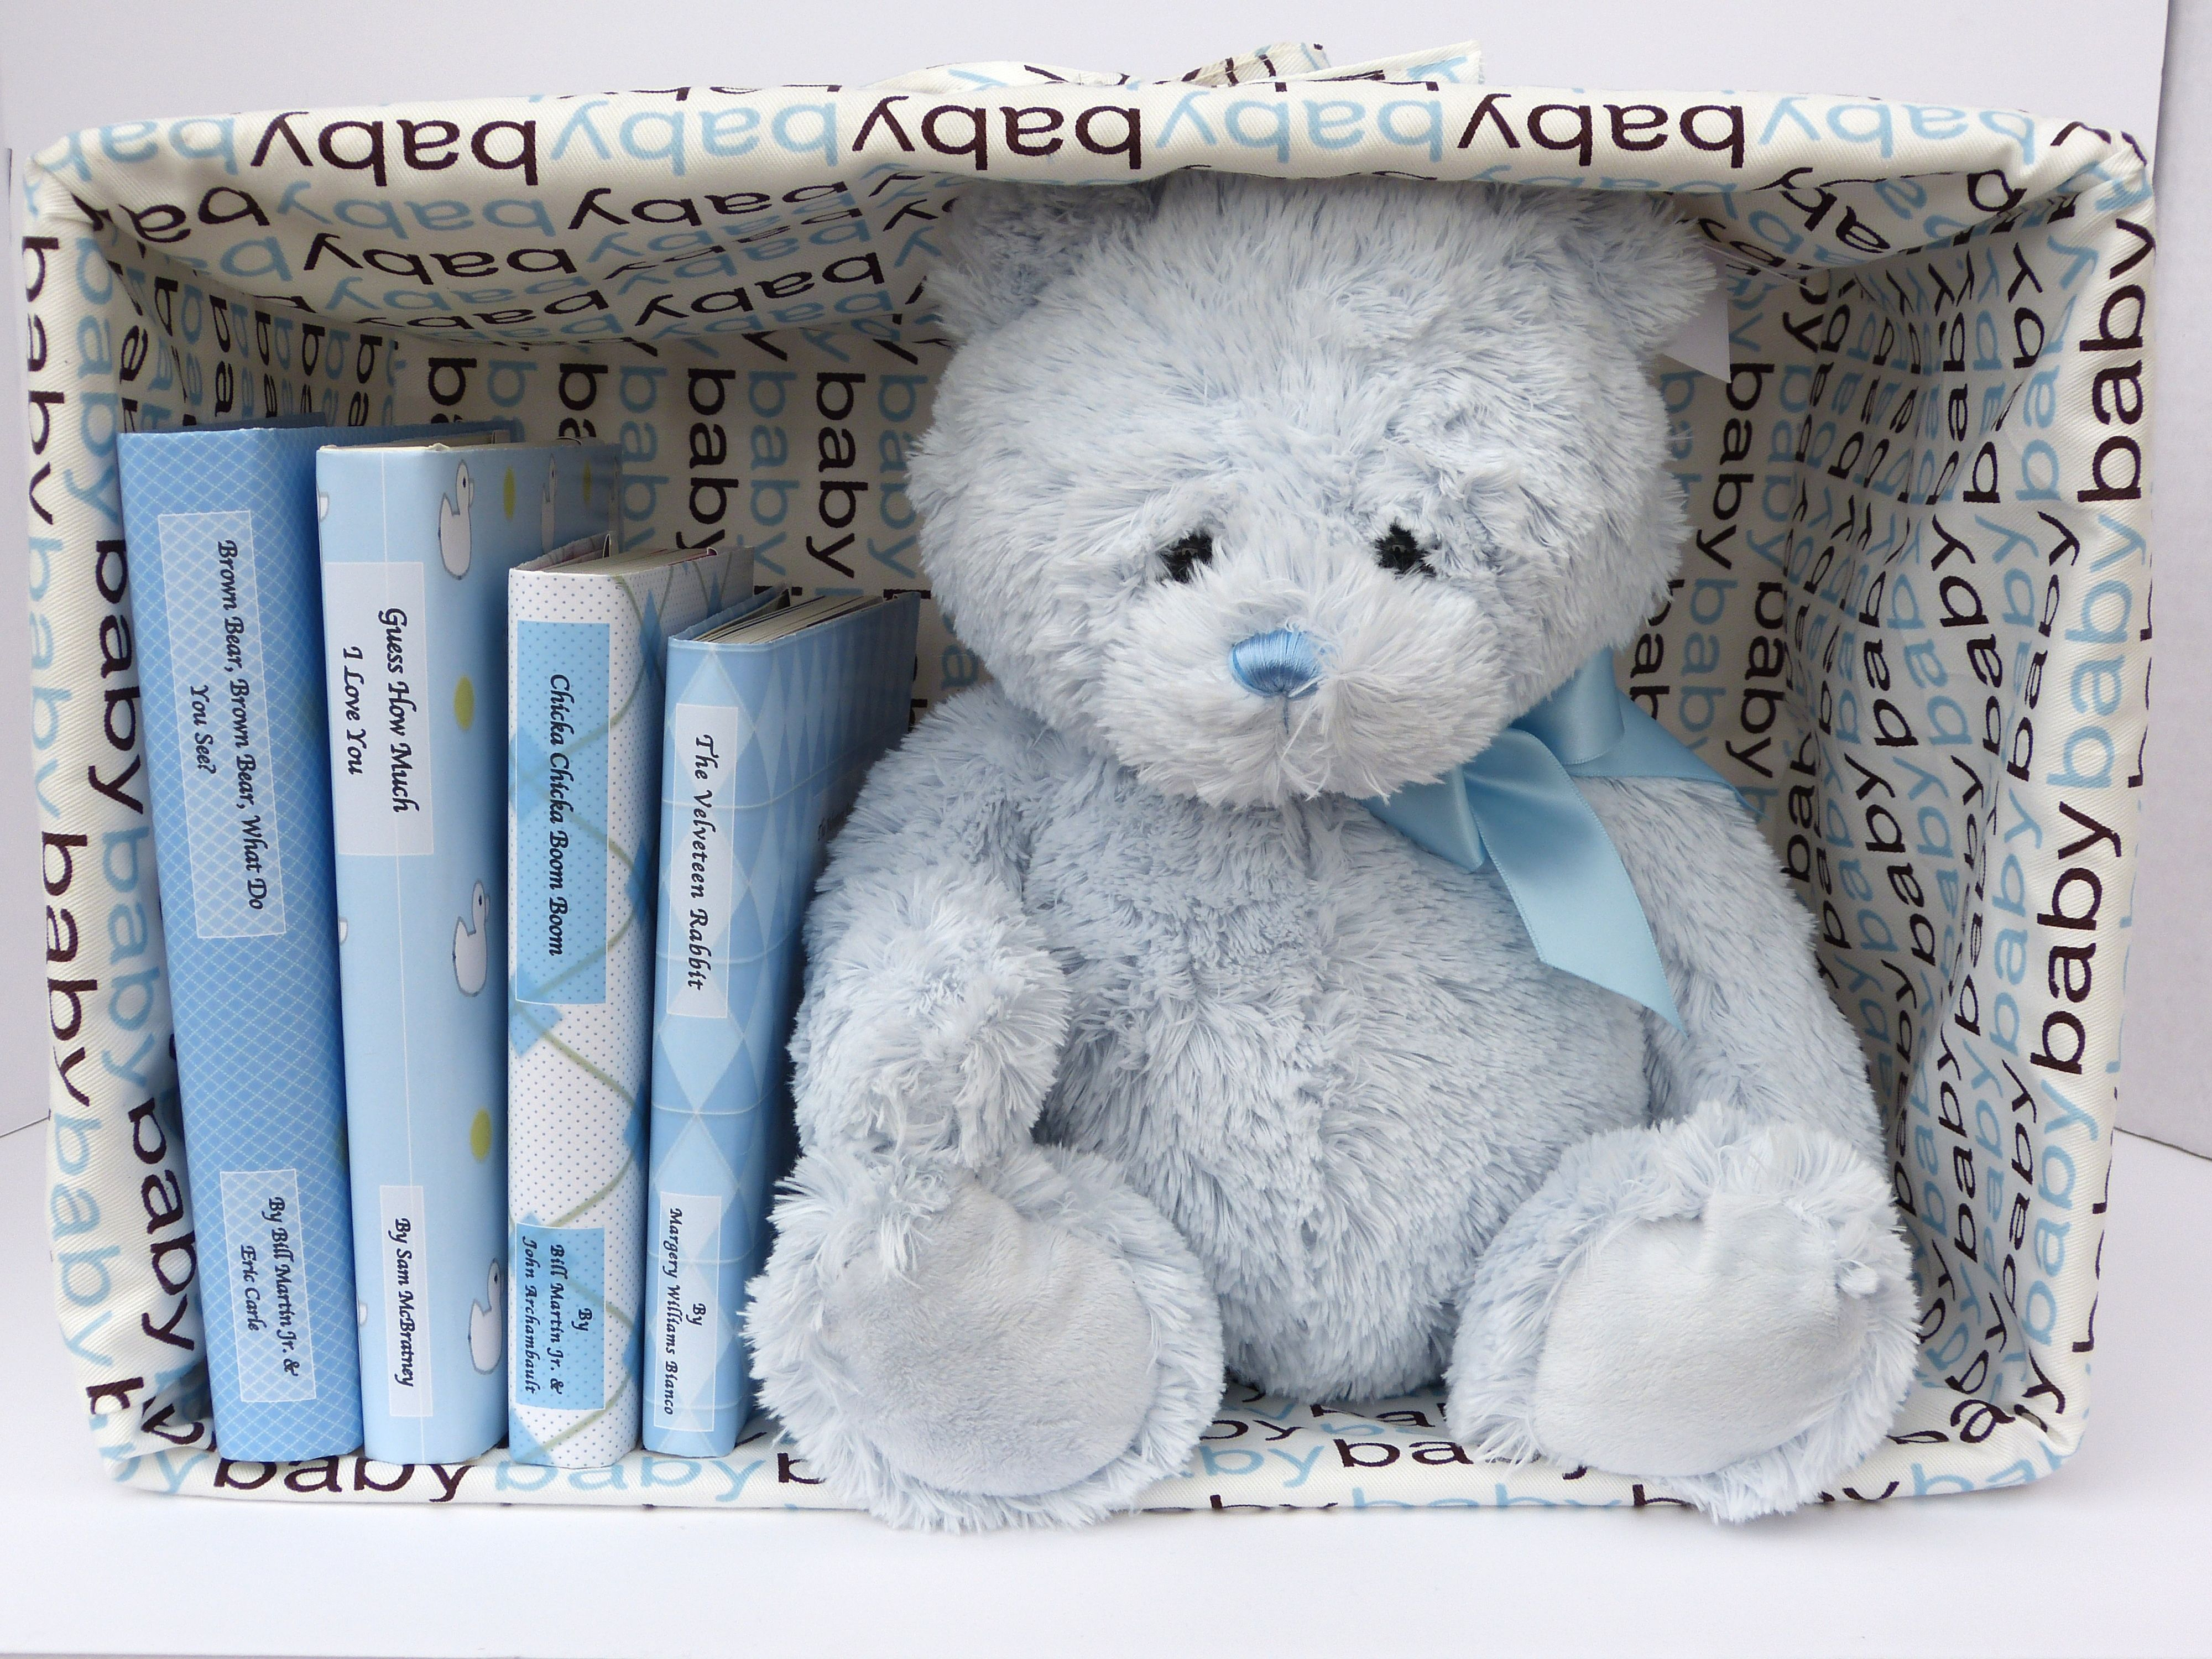 What a perfect personalized gift and way to instill an early love of items similar to personalized baby shower gift books baby shower gift personalized books personalized childrens books baby birthday gift custom books on negle Images